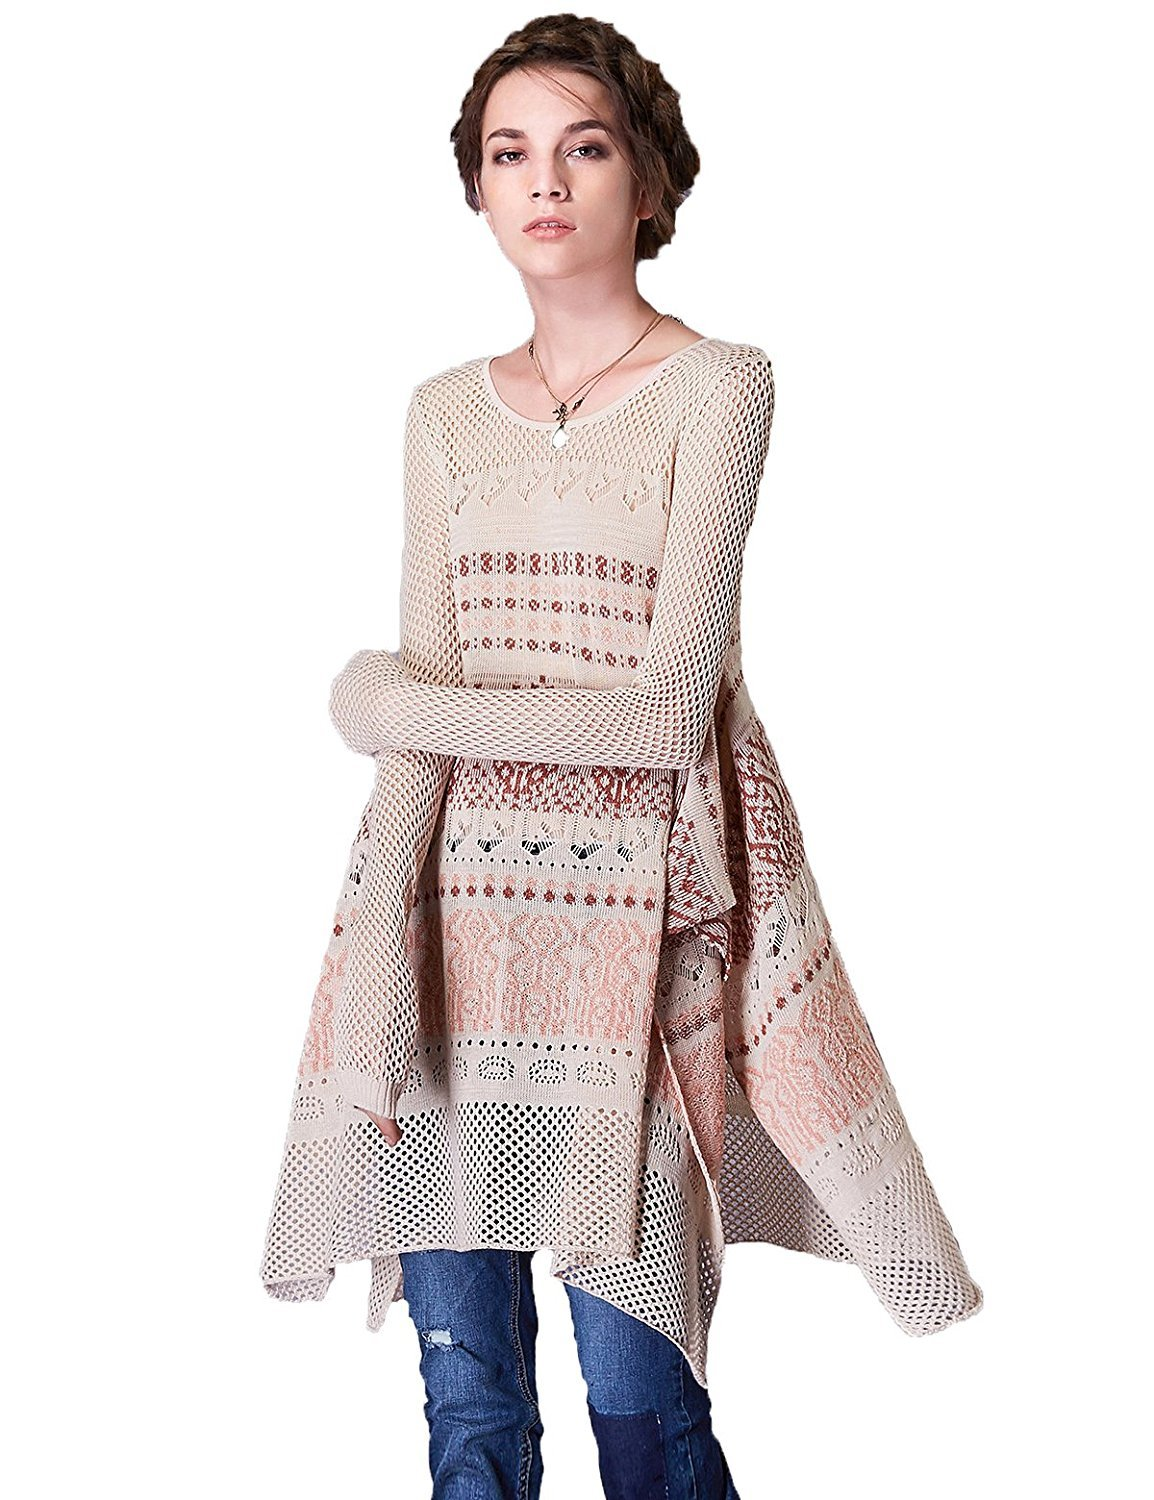 Artka Women's Hollow Embroidered Knit Pullover Sweater with Long Sleeve Split Hem One Size Beige